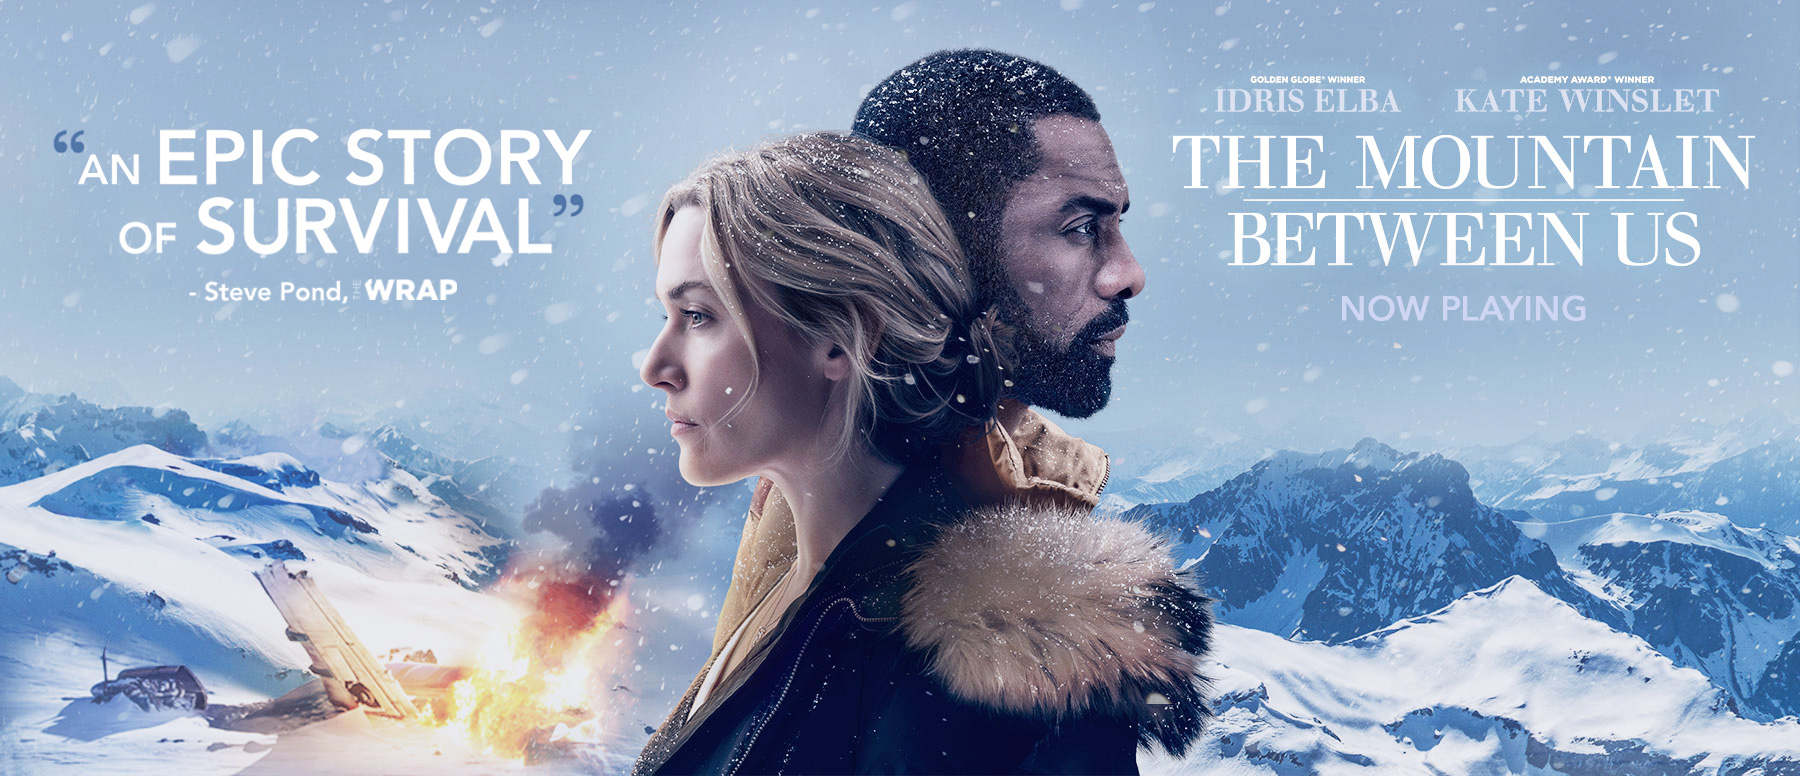 تحلیل فیلم The Mountain Between Us